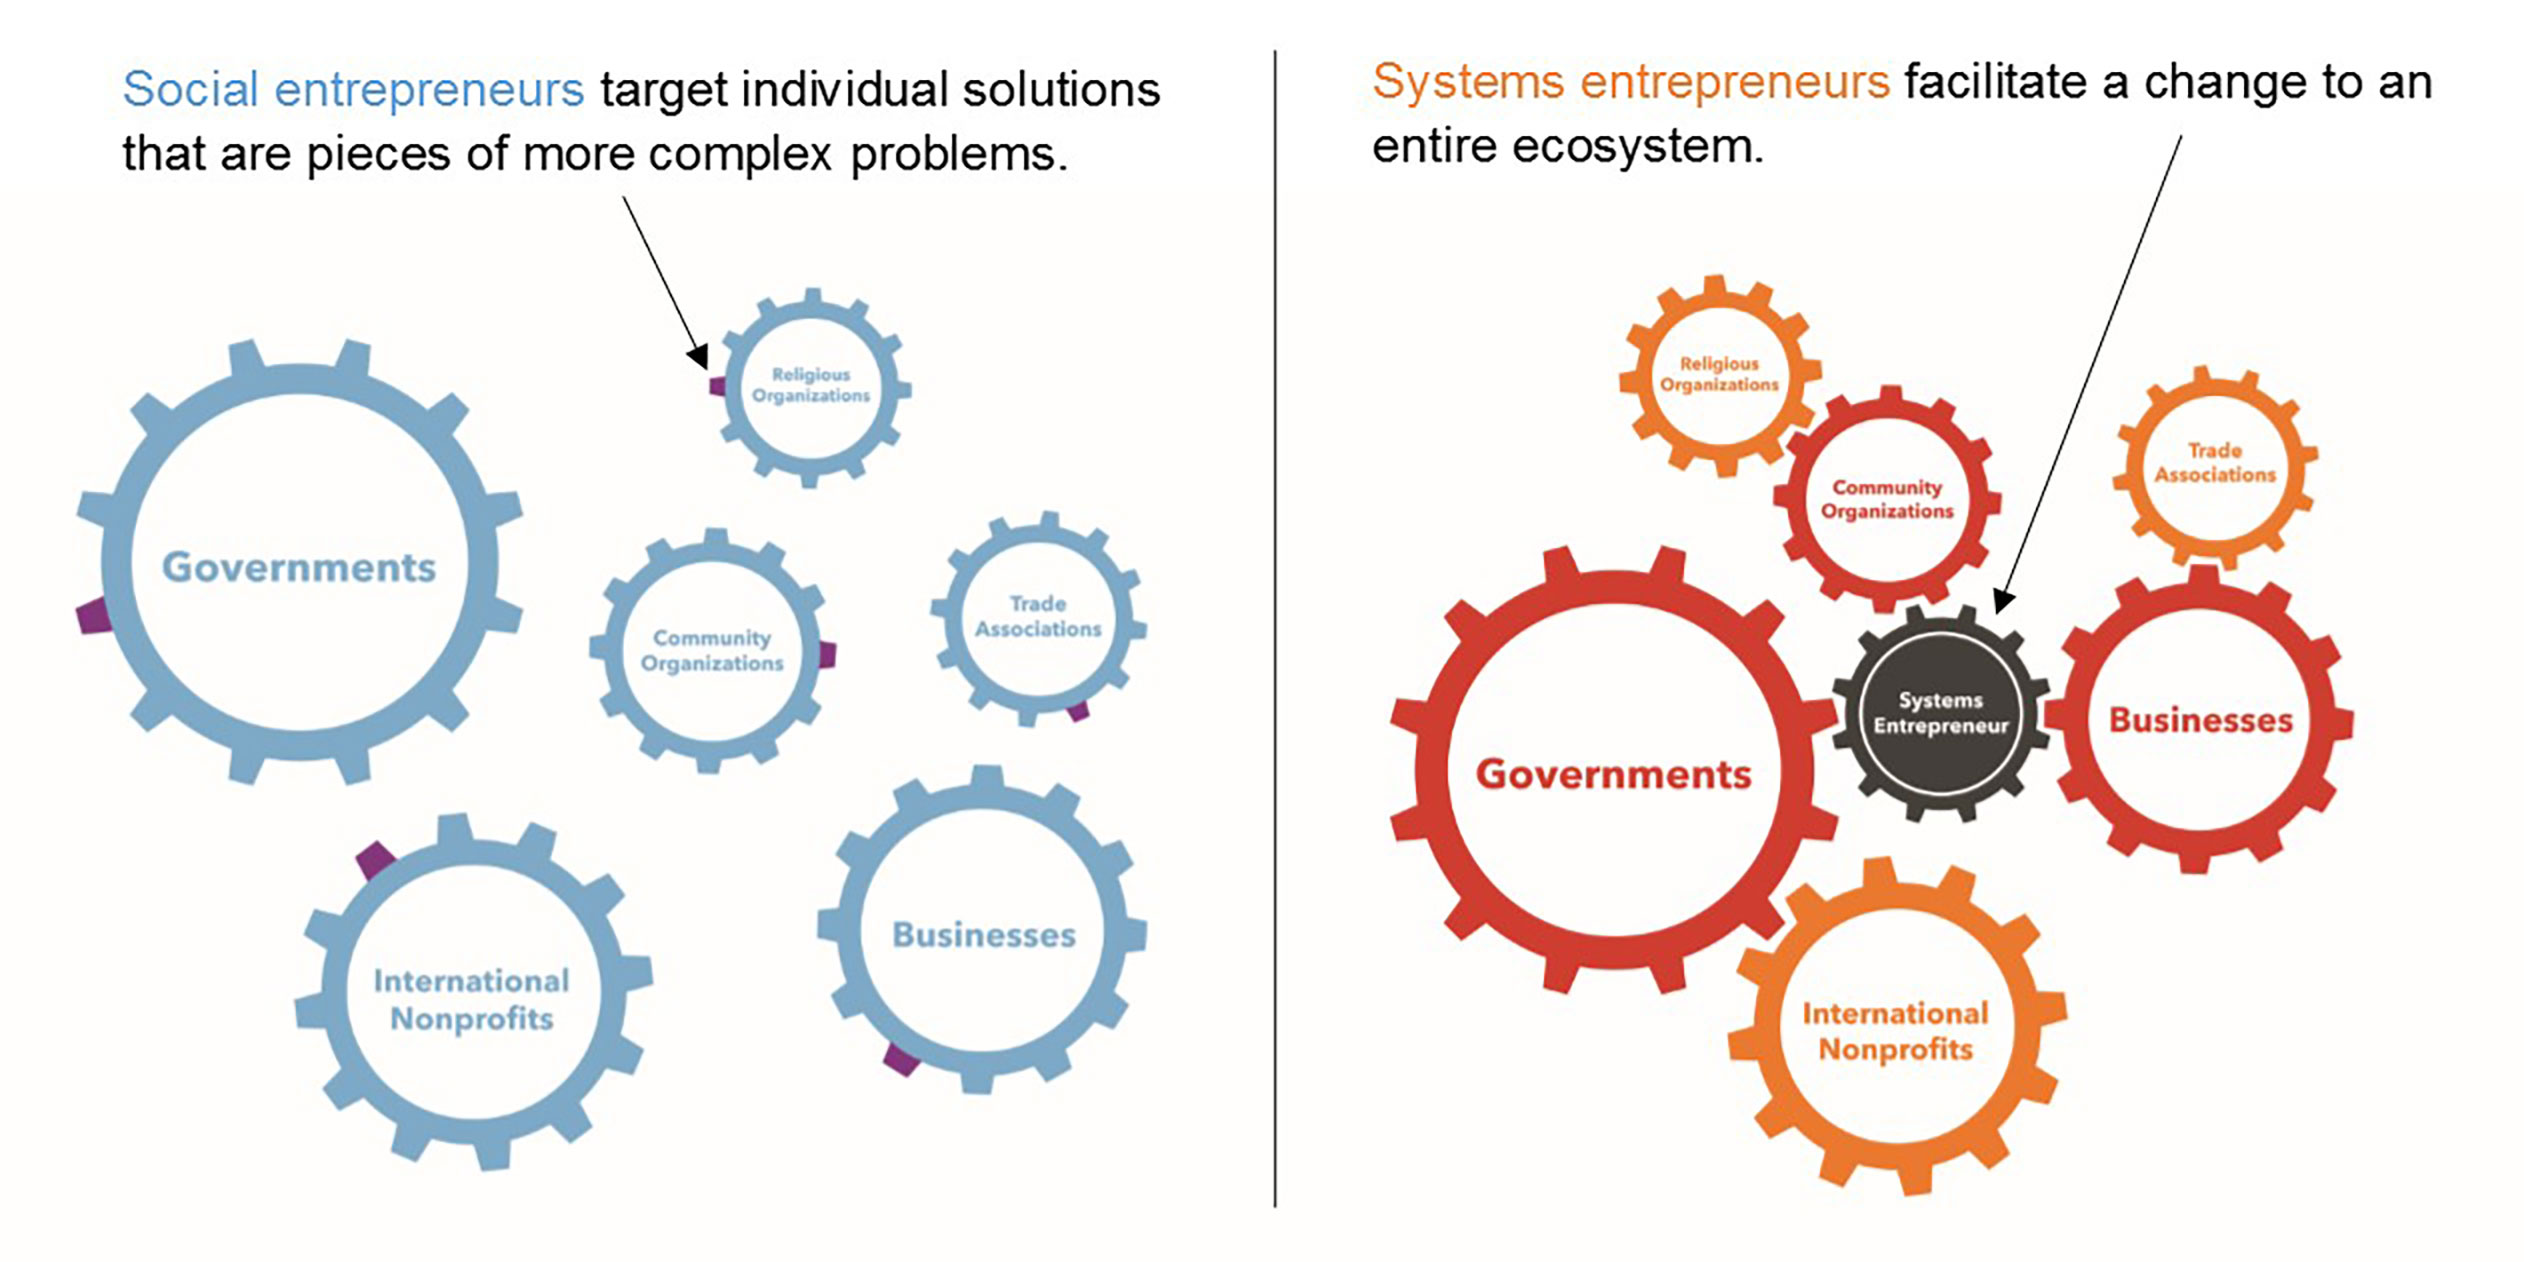 The difference between social and systems entrepreneurs